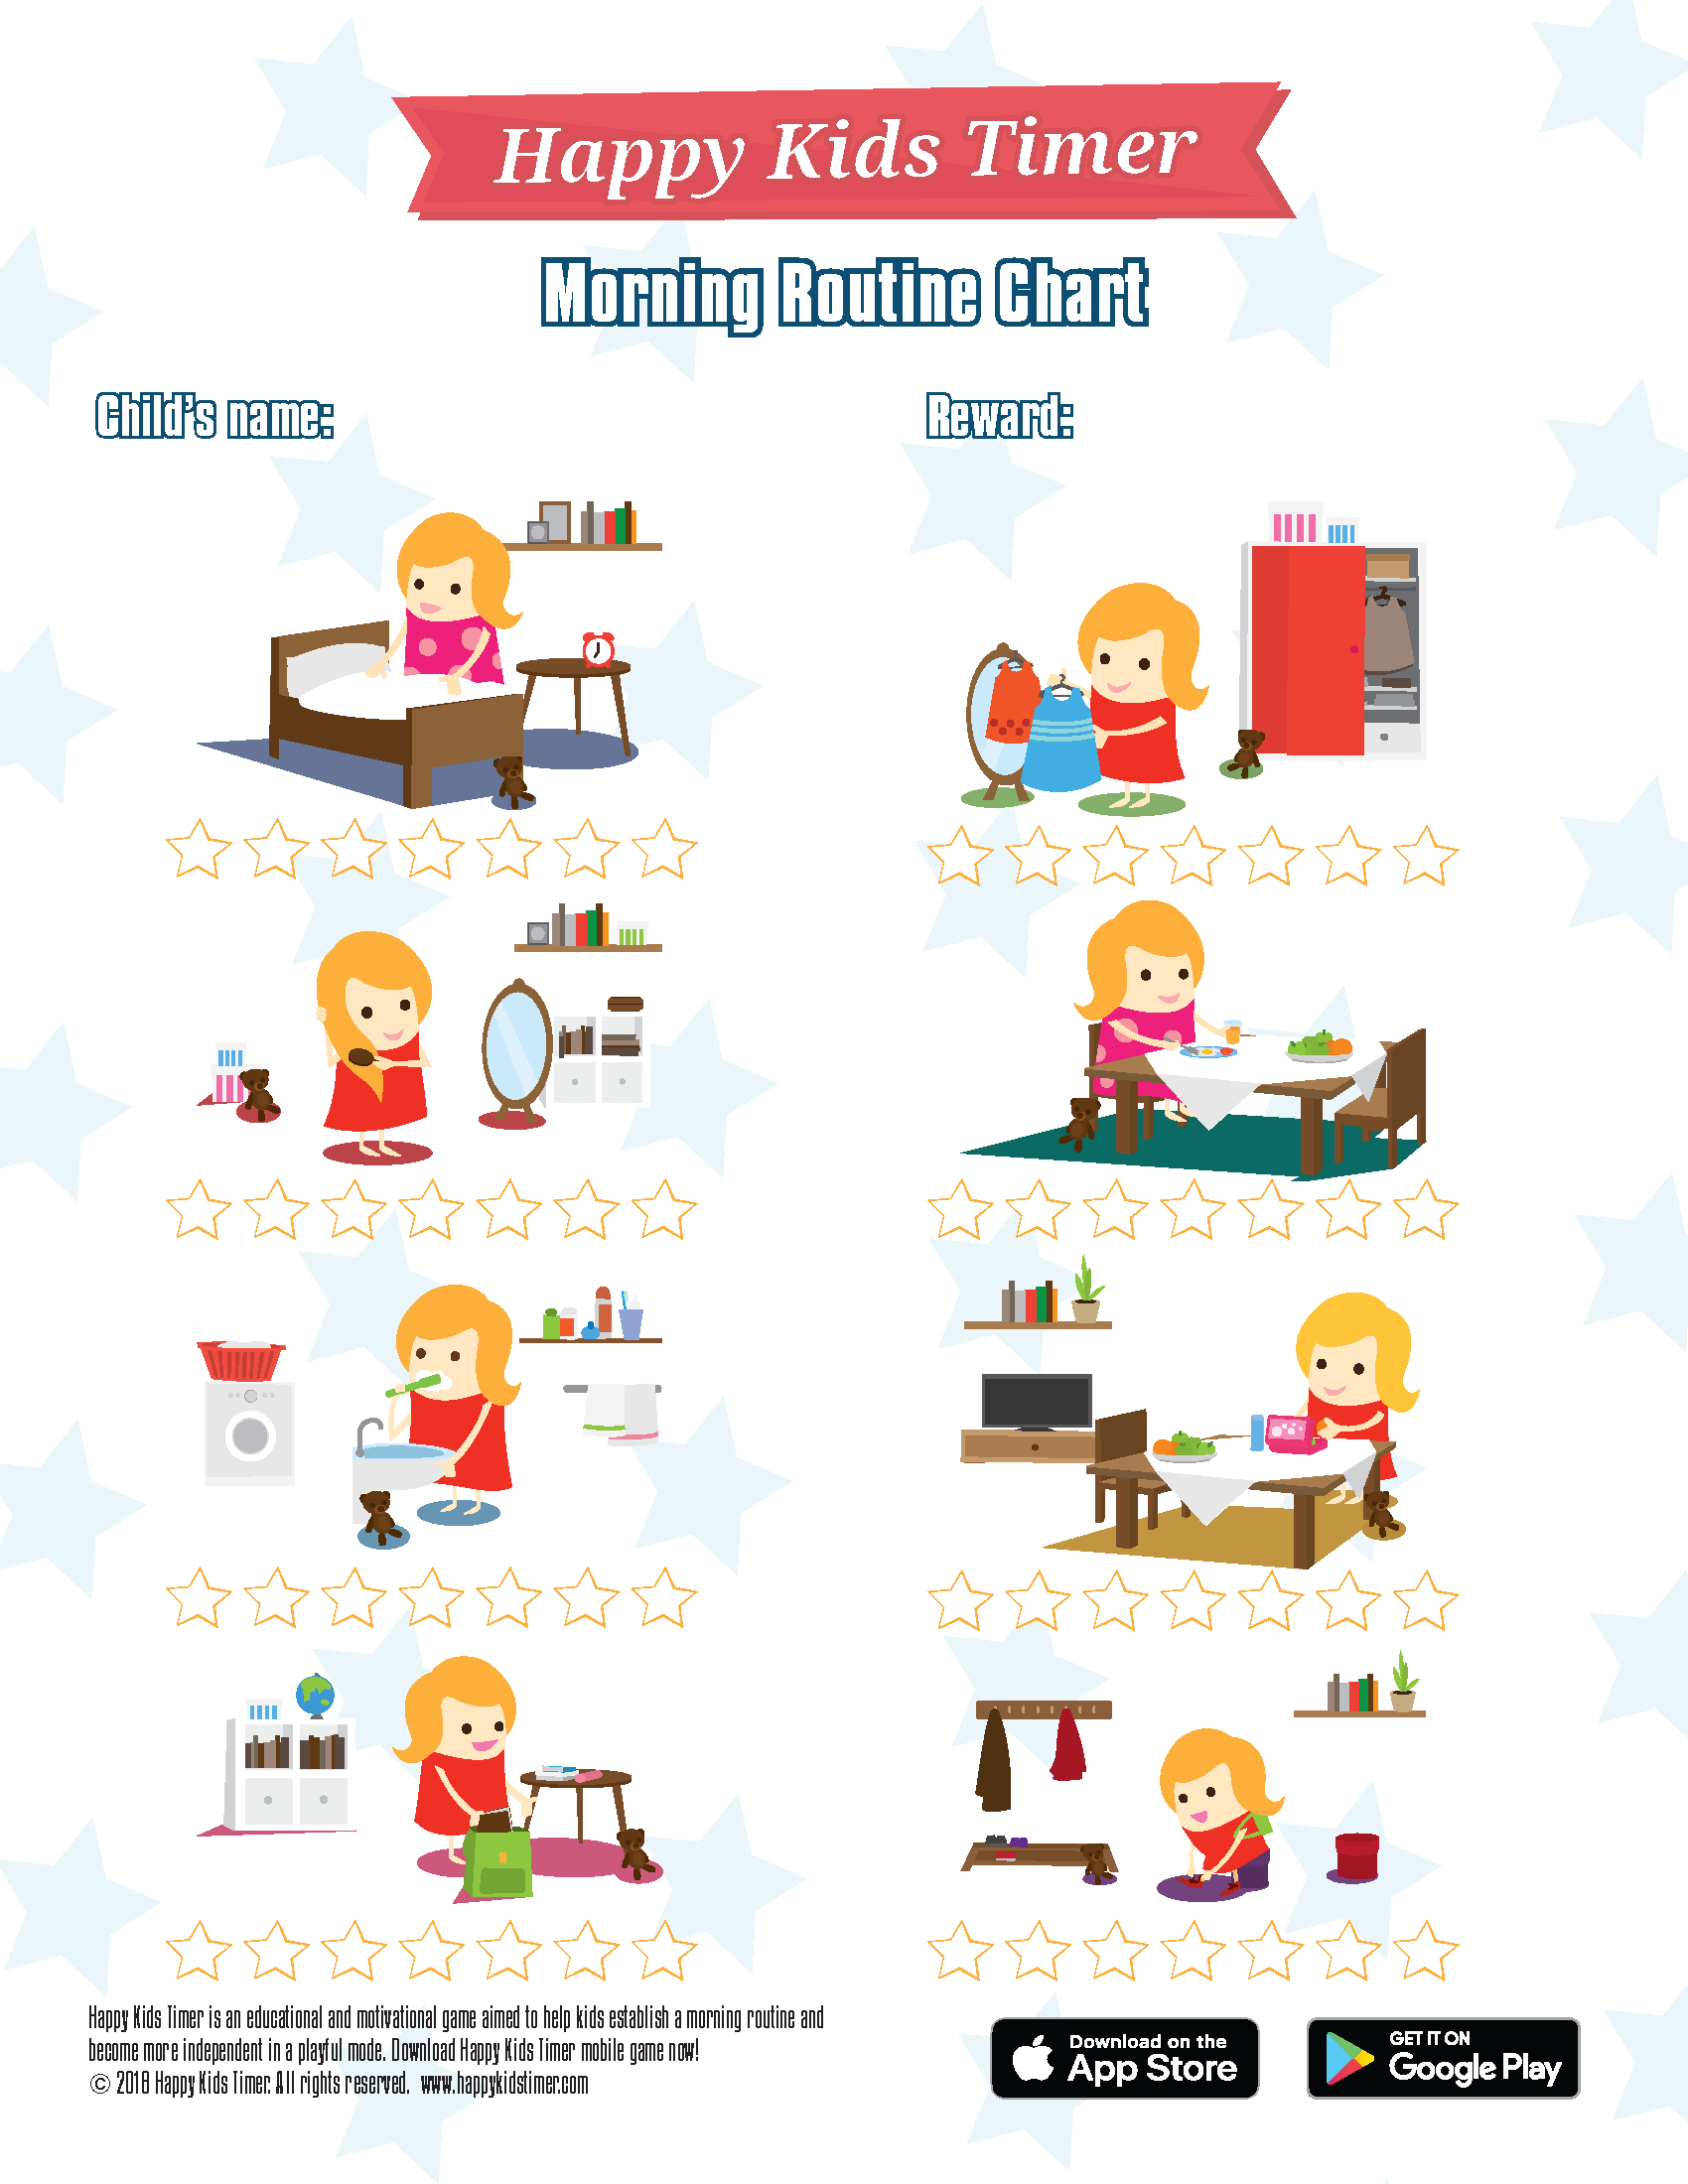 Download Free Printable Morning Routine Chart - Children's Routine Charts Free Printable